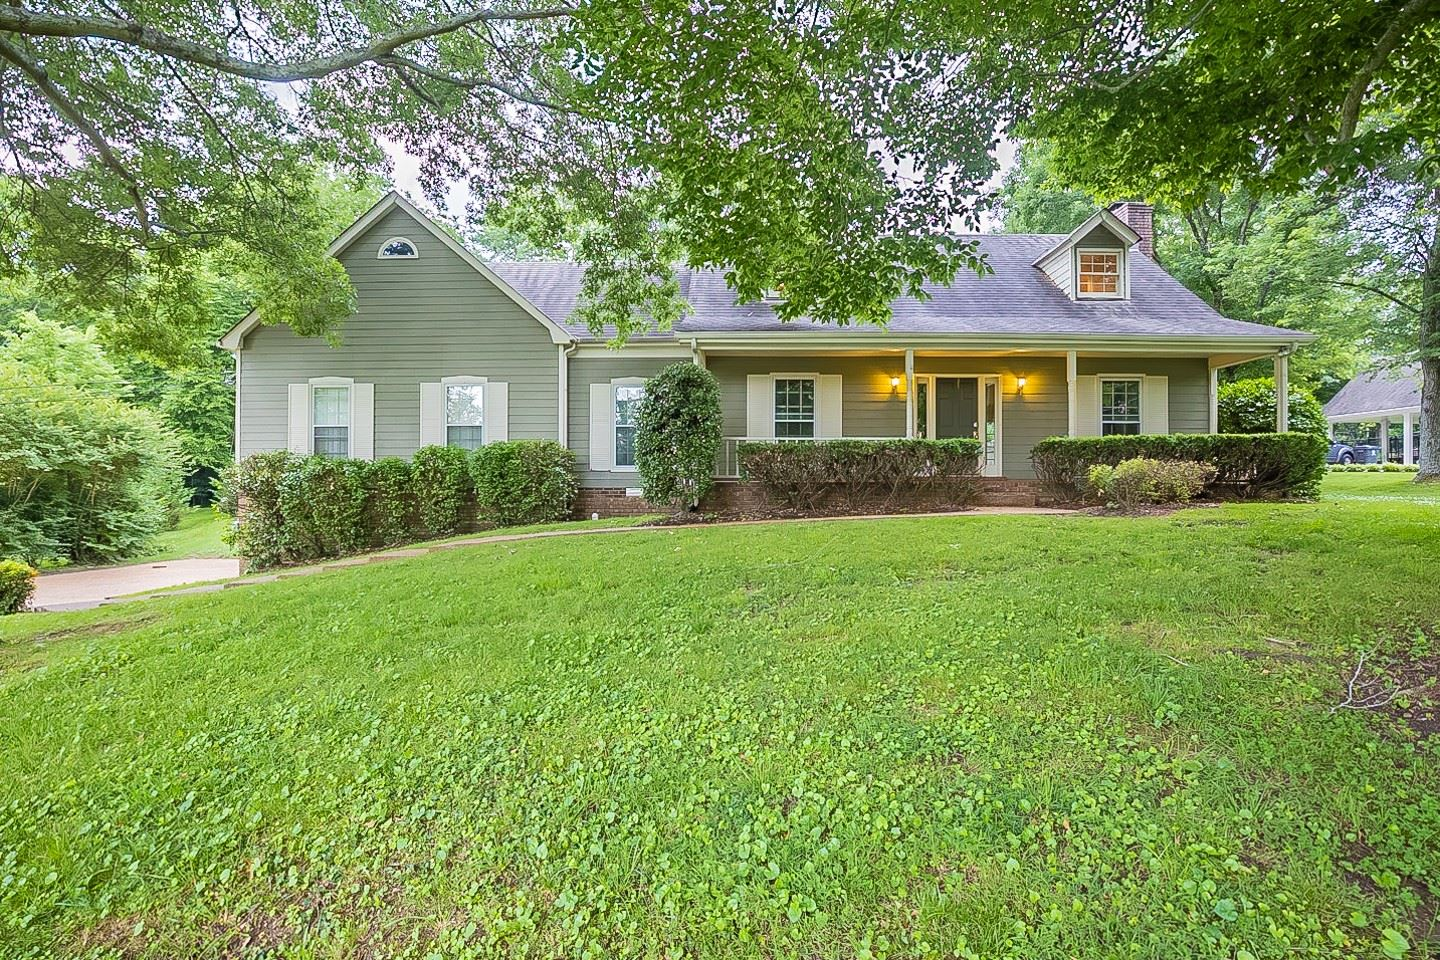 Photo of 1428 Red Oak Dr, Brentwood, TN 37027 (MLS # 2263145)